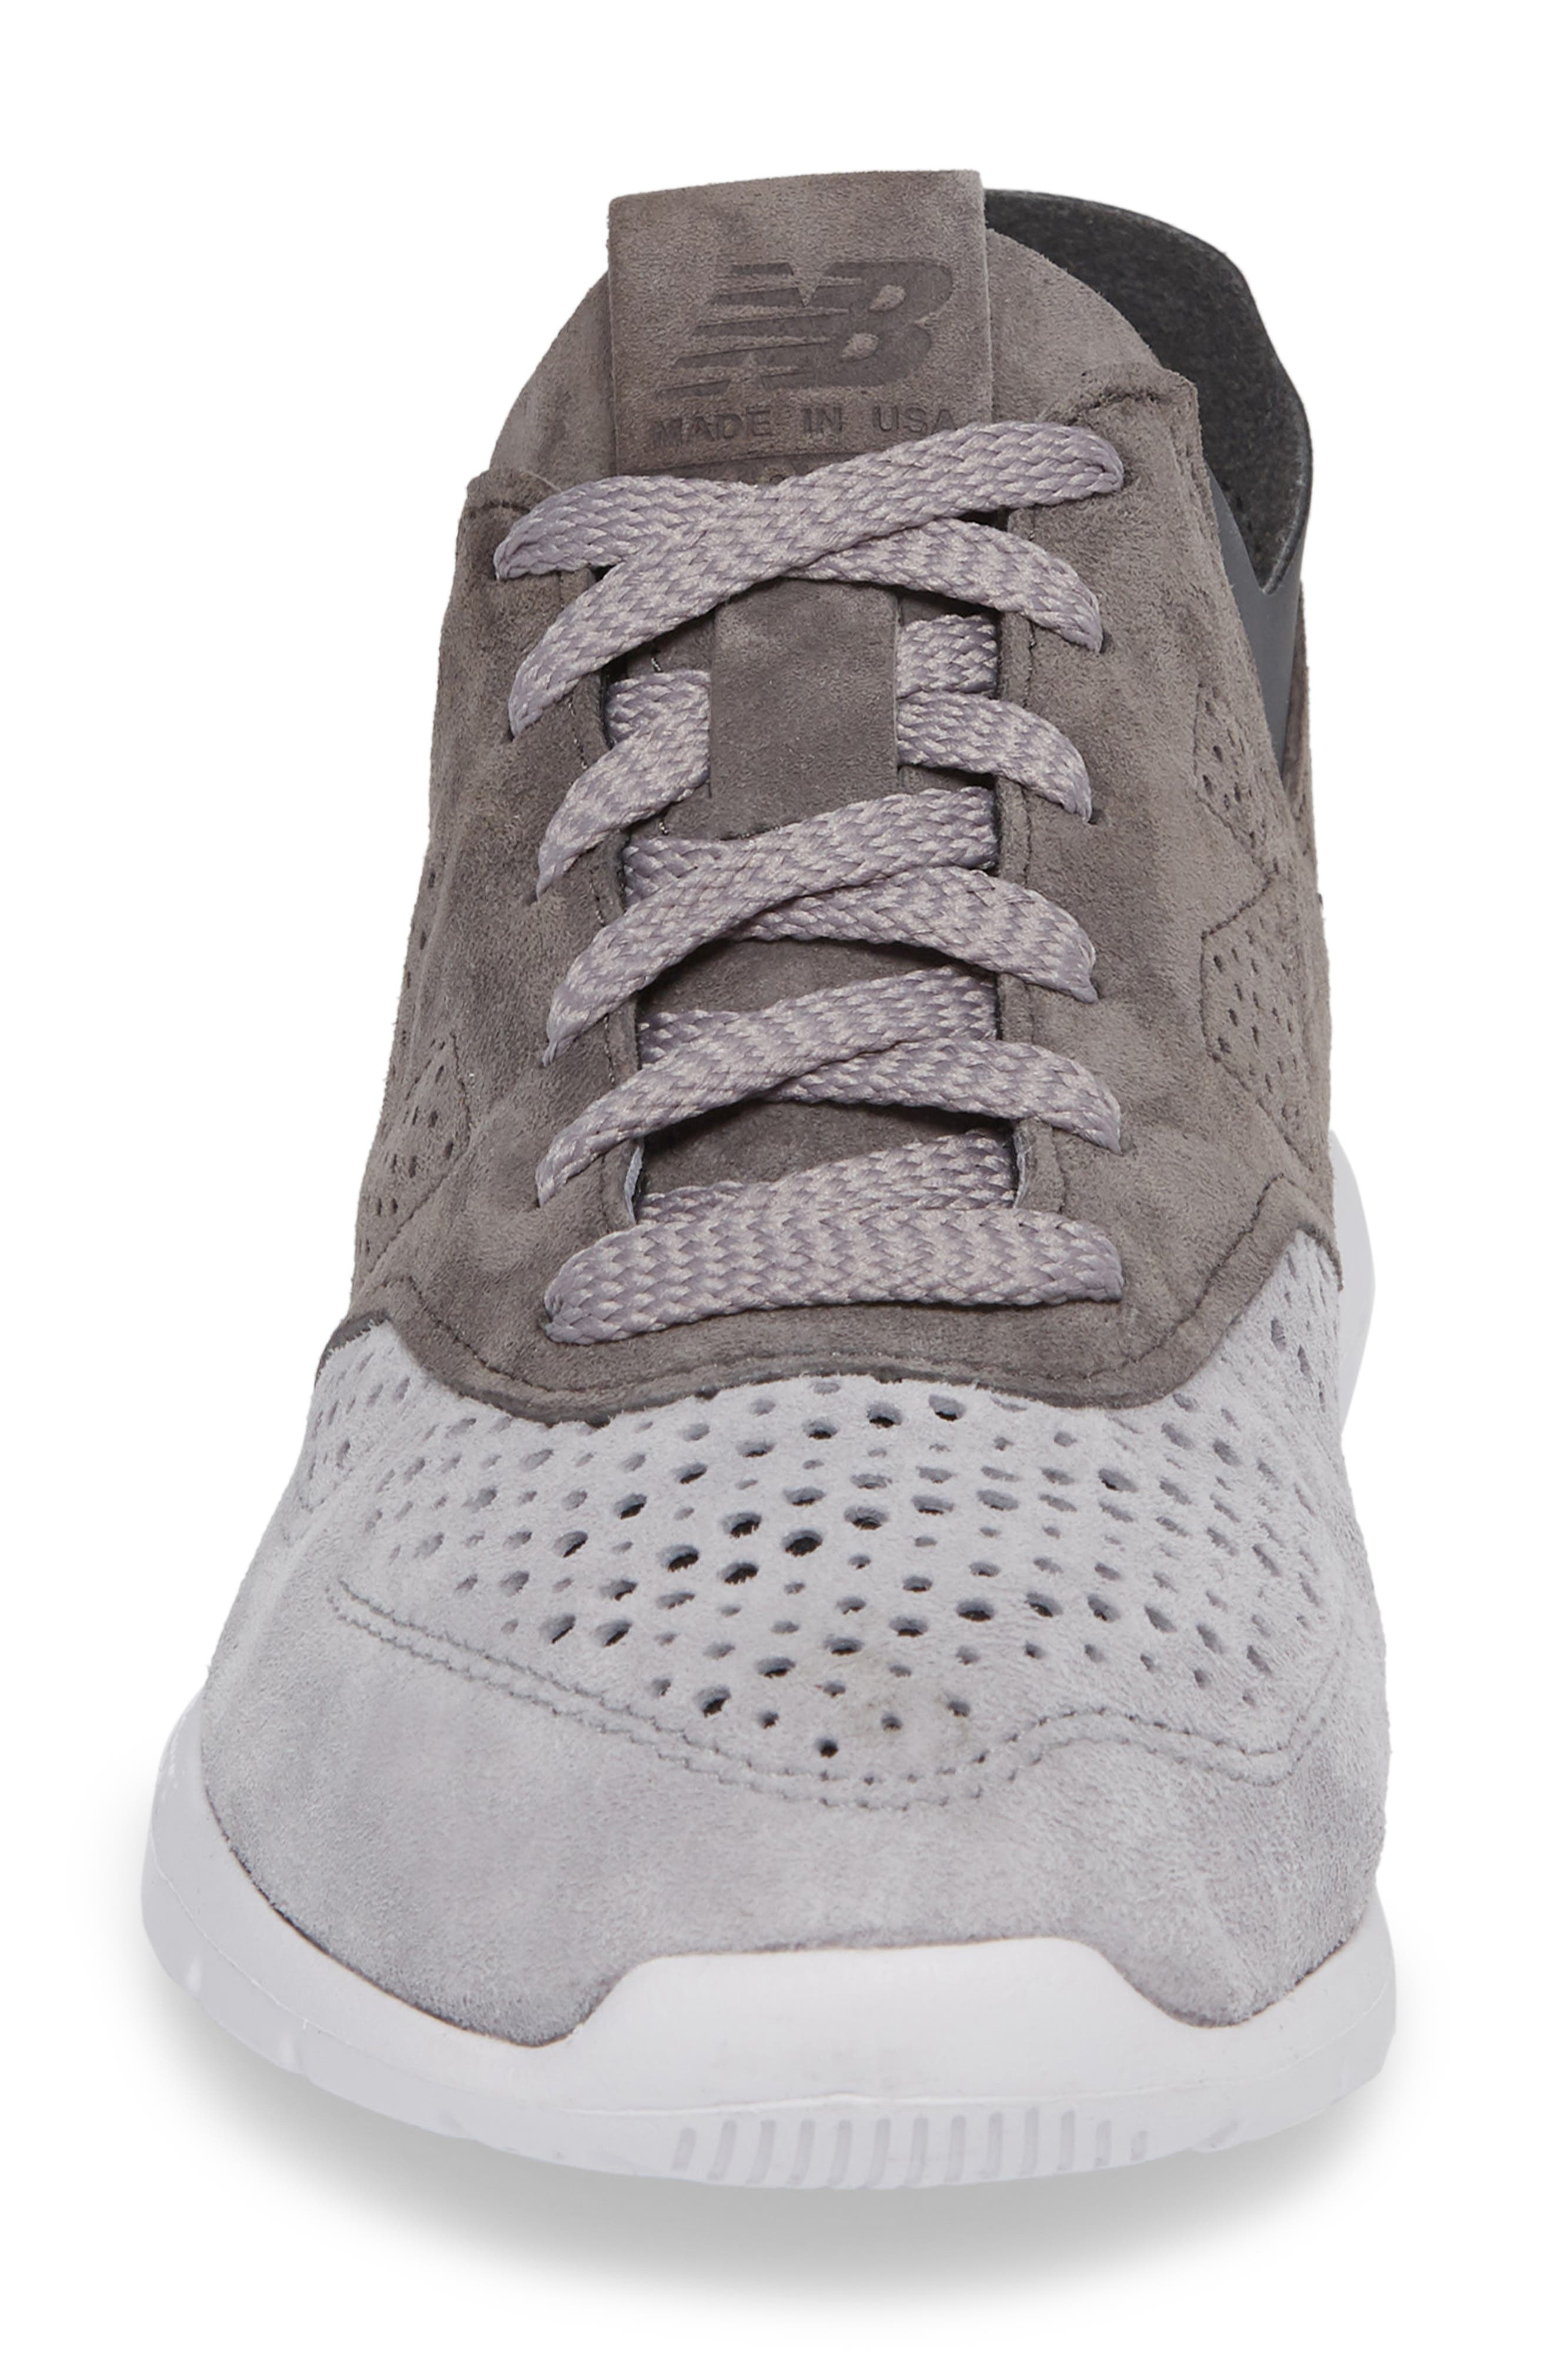 1978 Perforated Sneaker,                             Alternate thumbnail 4, color,                             Grey